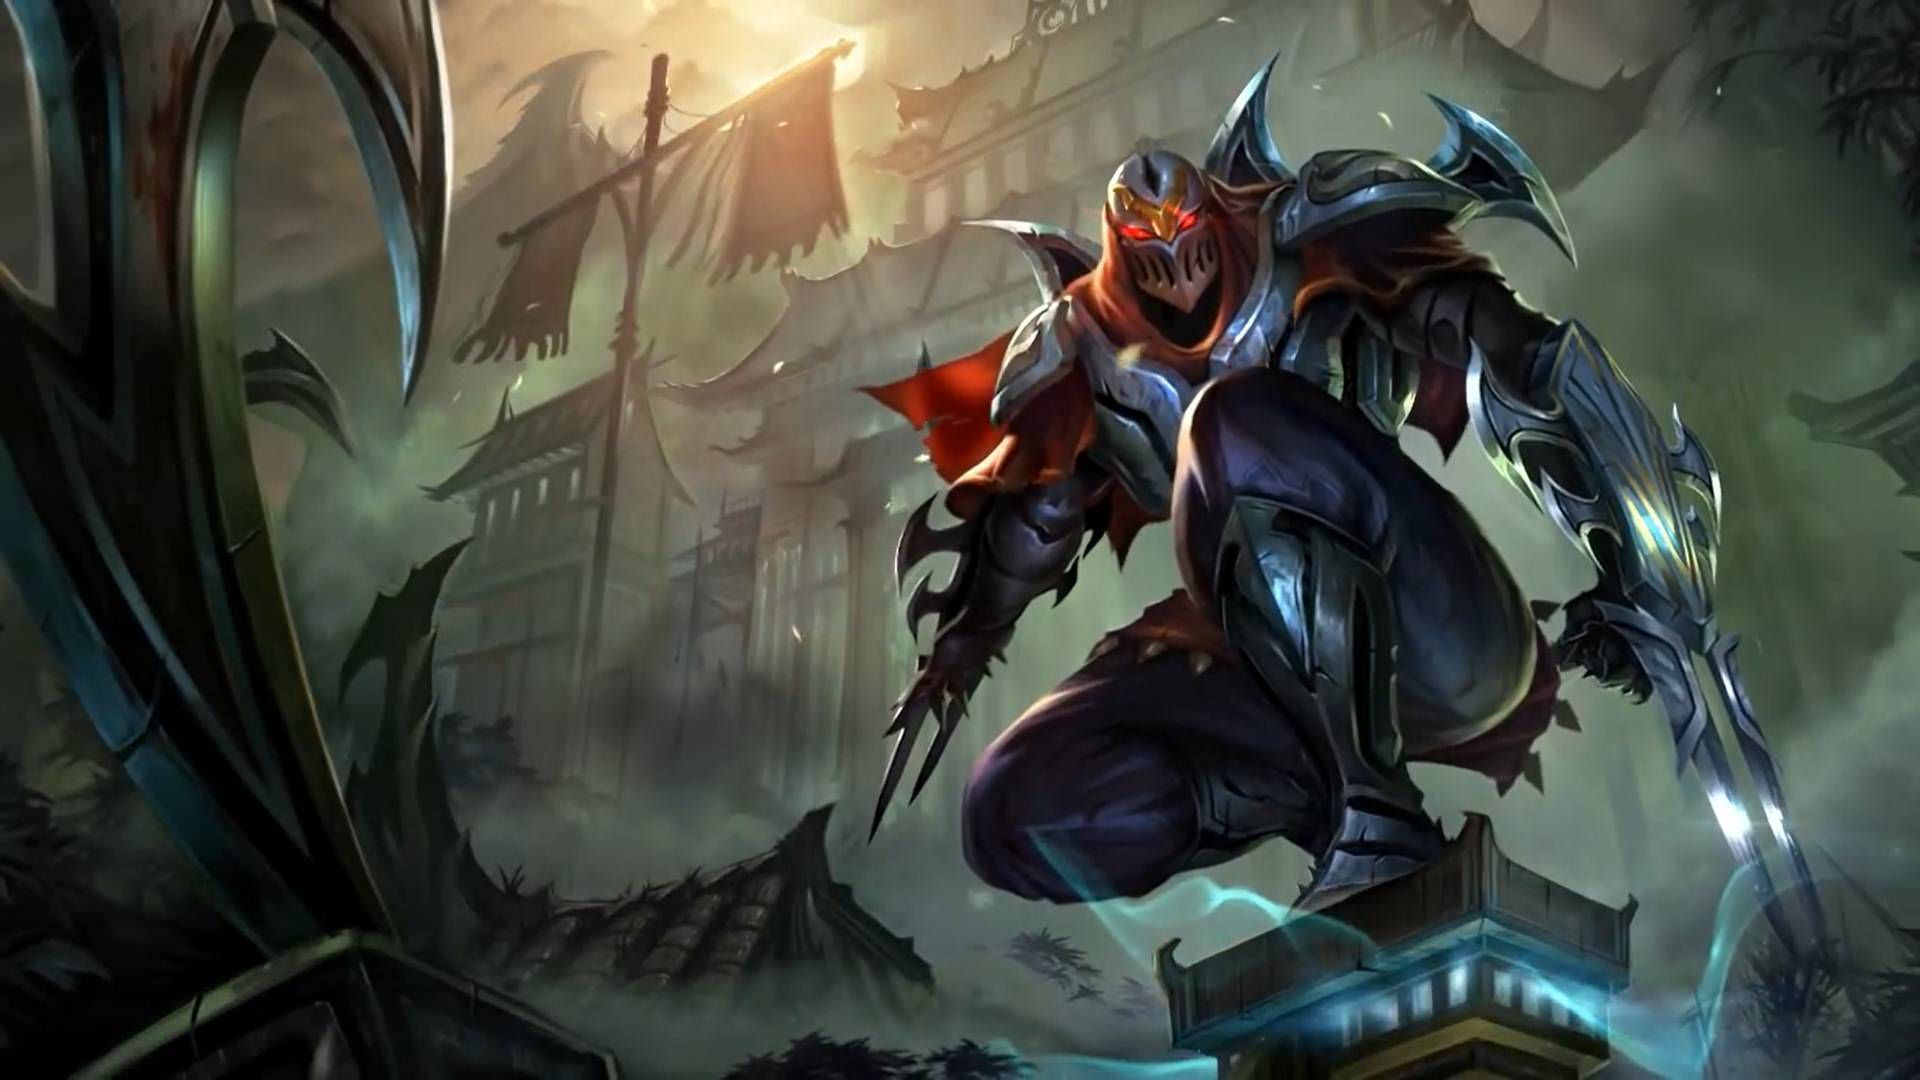 One Shot One Kill Neglected Deathgun Reader X Rwby Y N Team At Laughing Coffin League Of Legends League Of Legends Live Live Wallpapers